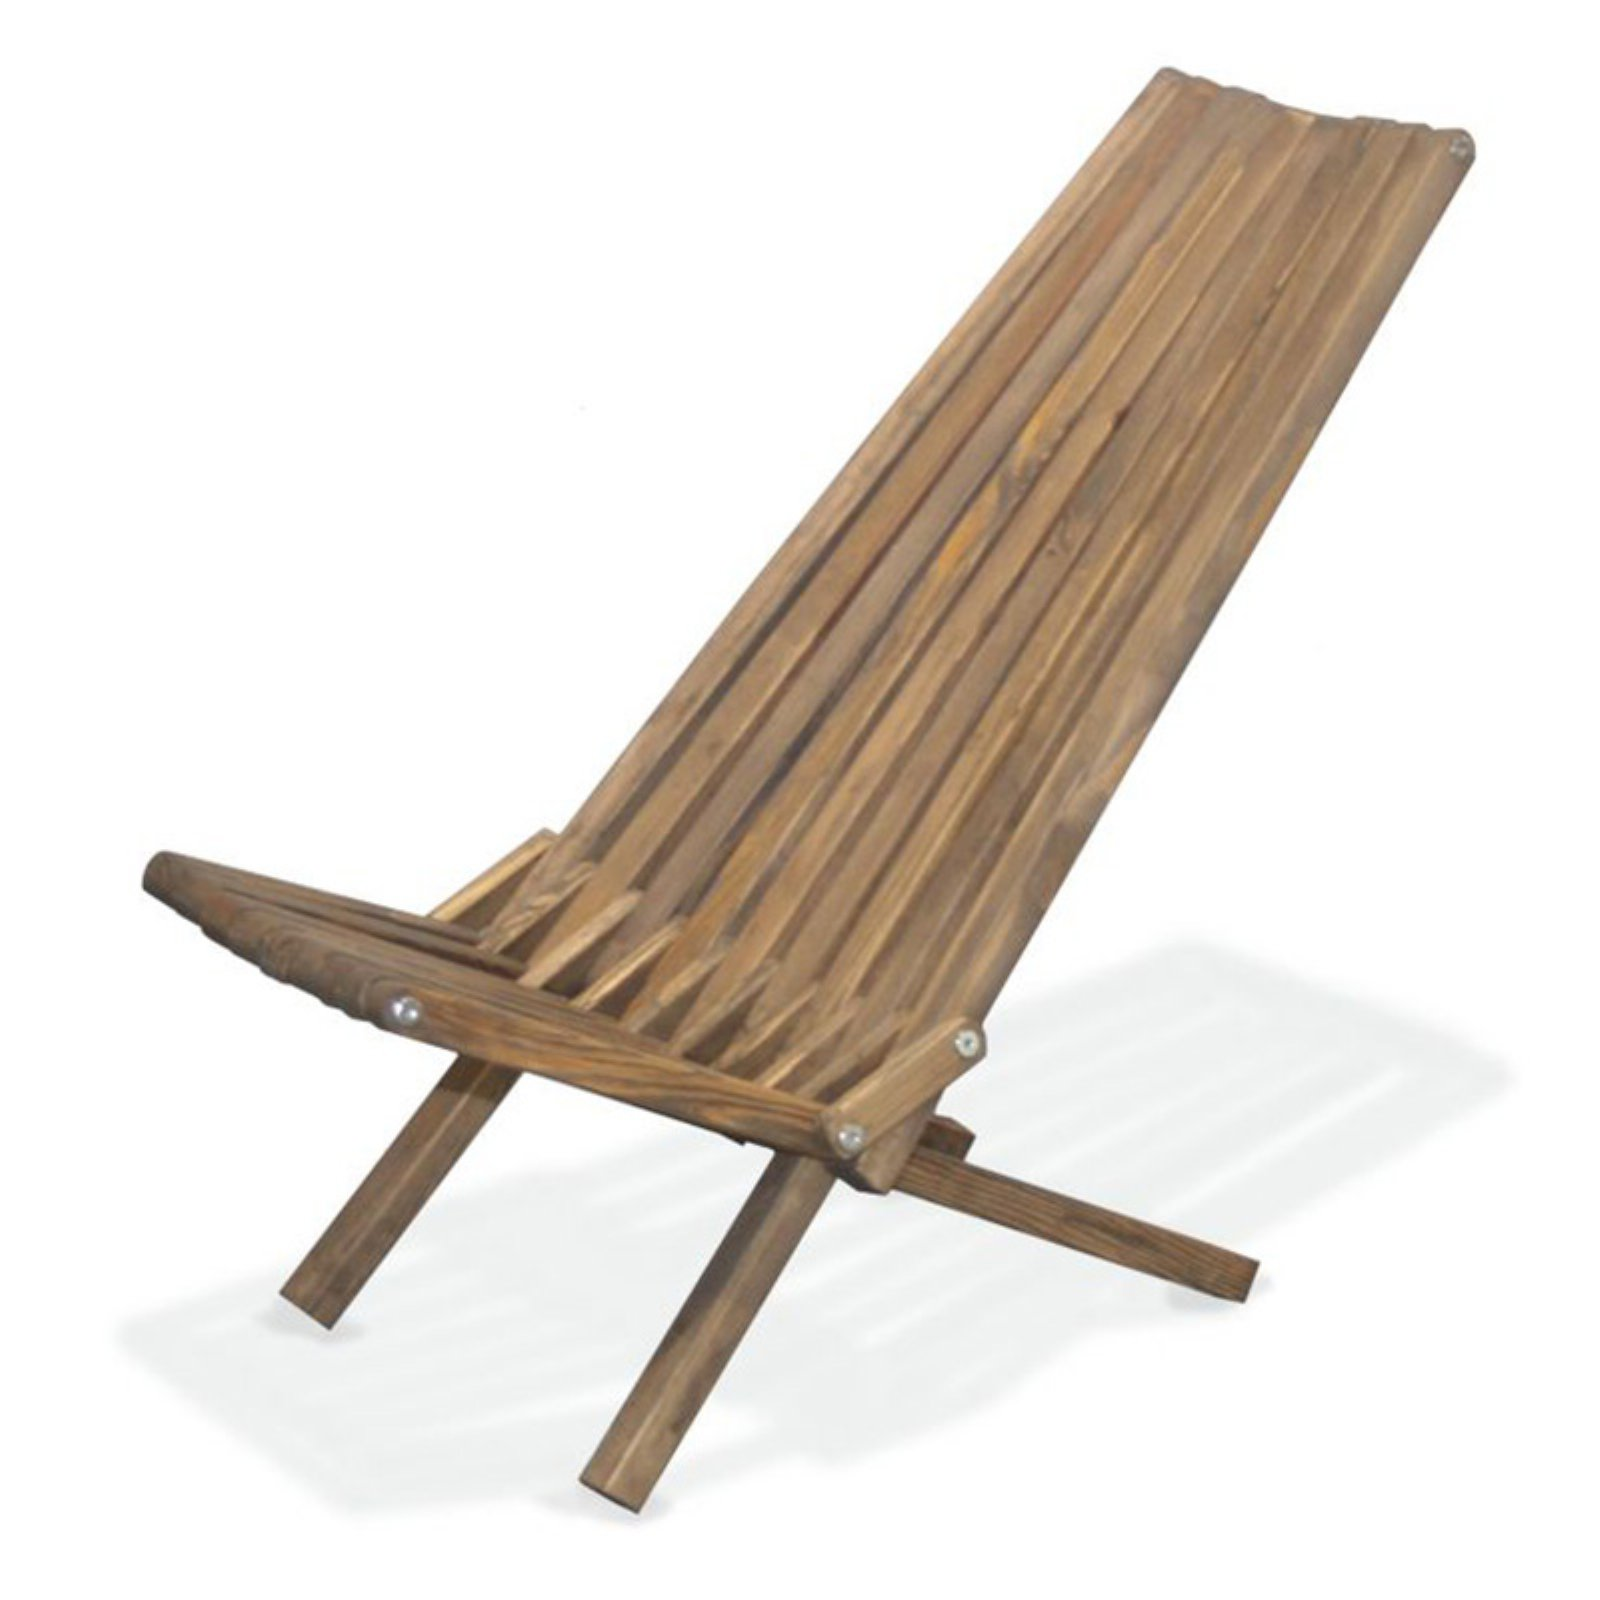 GloDea Xquare X45 Foldable Wooden Tall Back Patio Lounge Chair